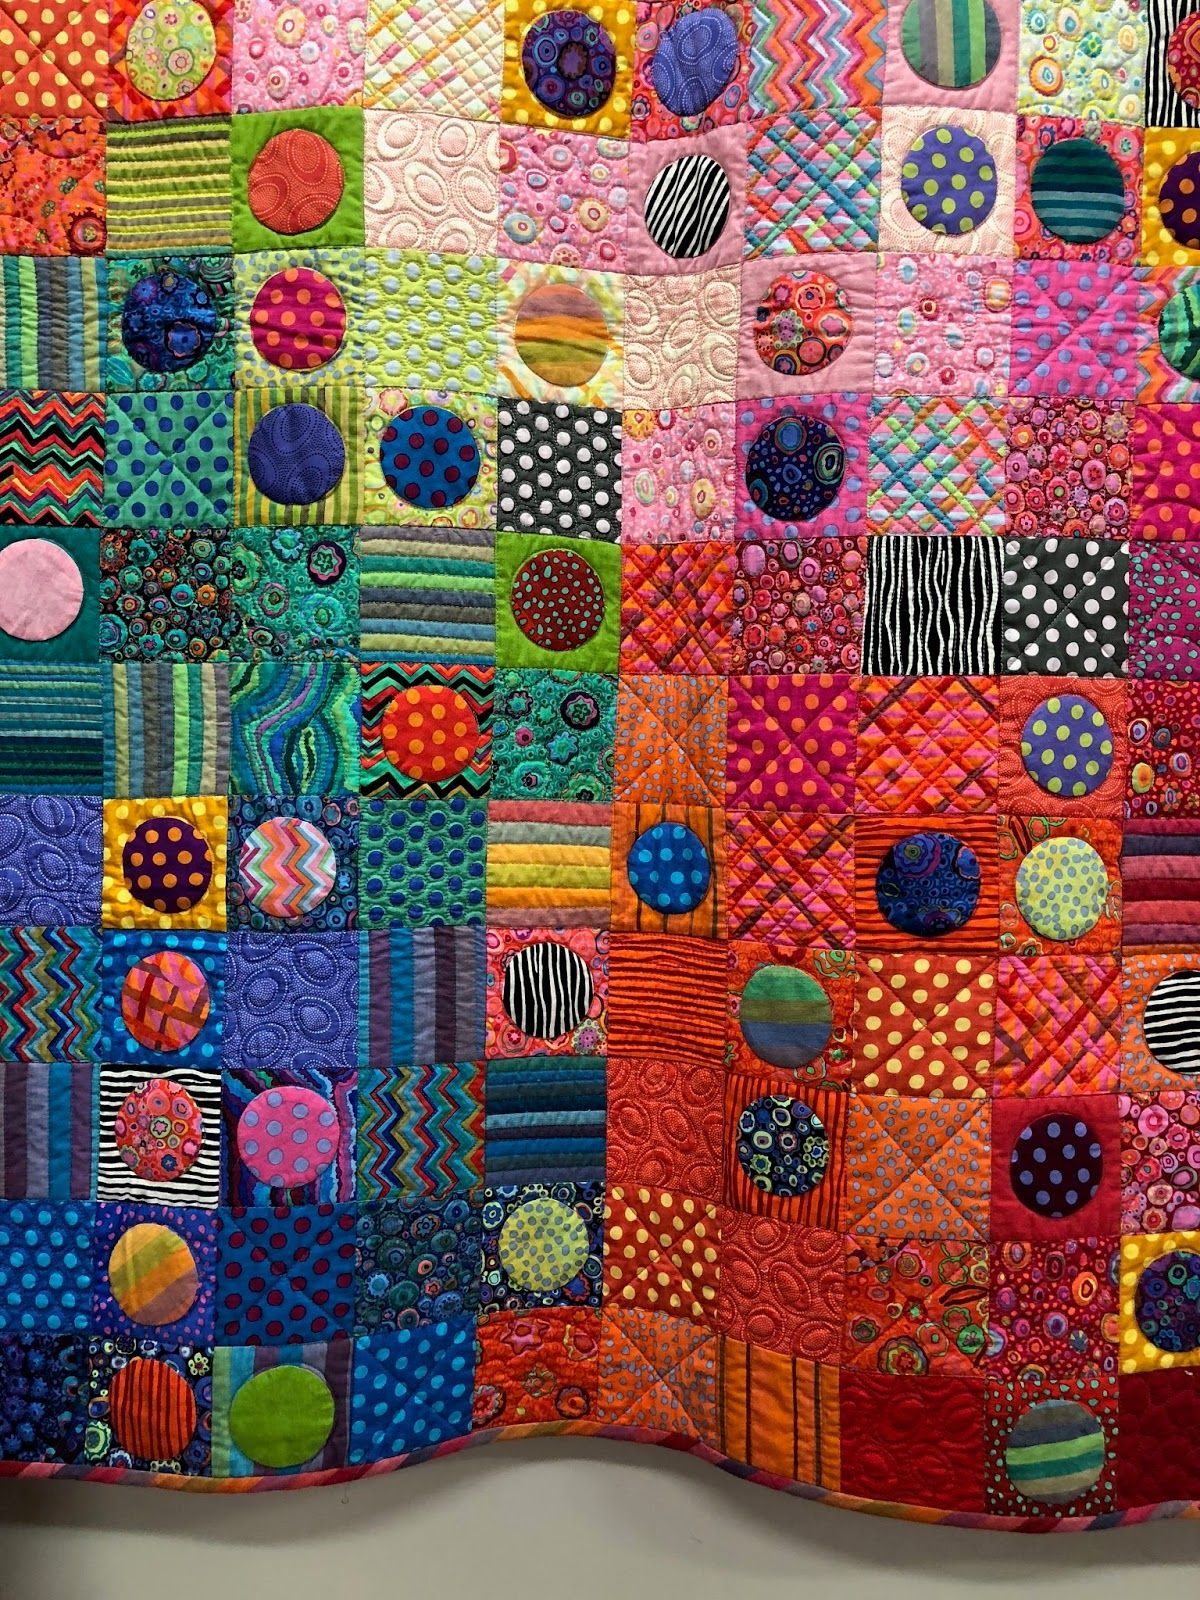 Pin by martina schmidt on quilts Pinterest Patchwork Circle